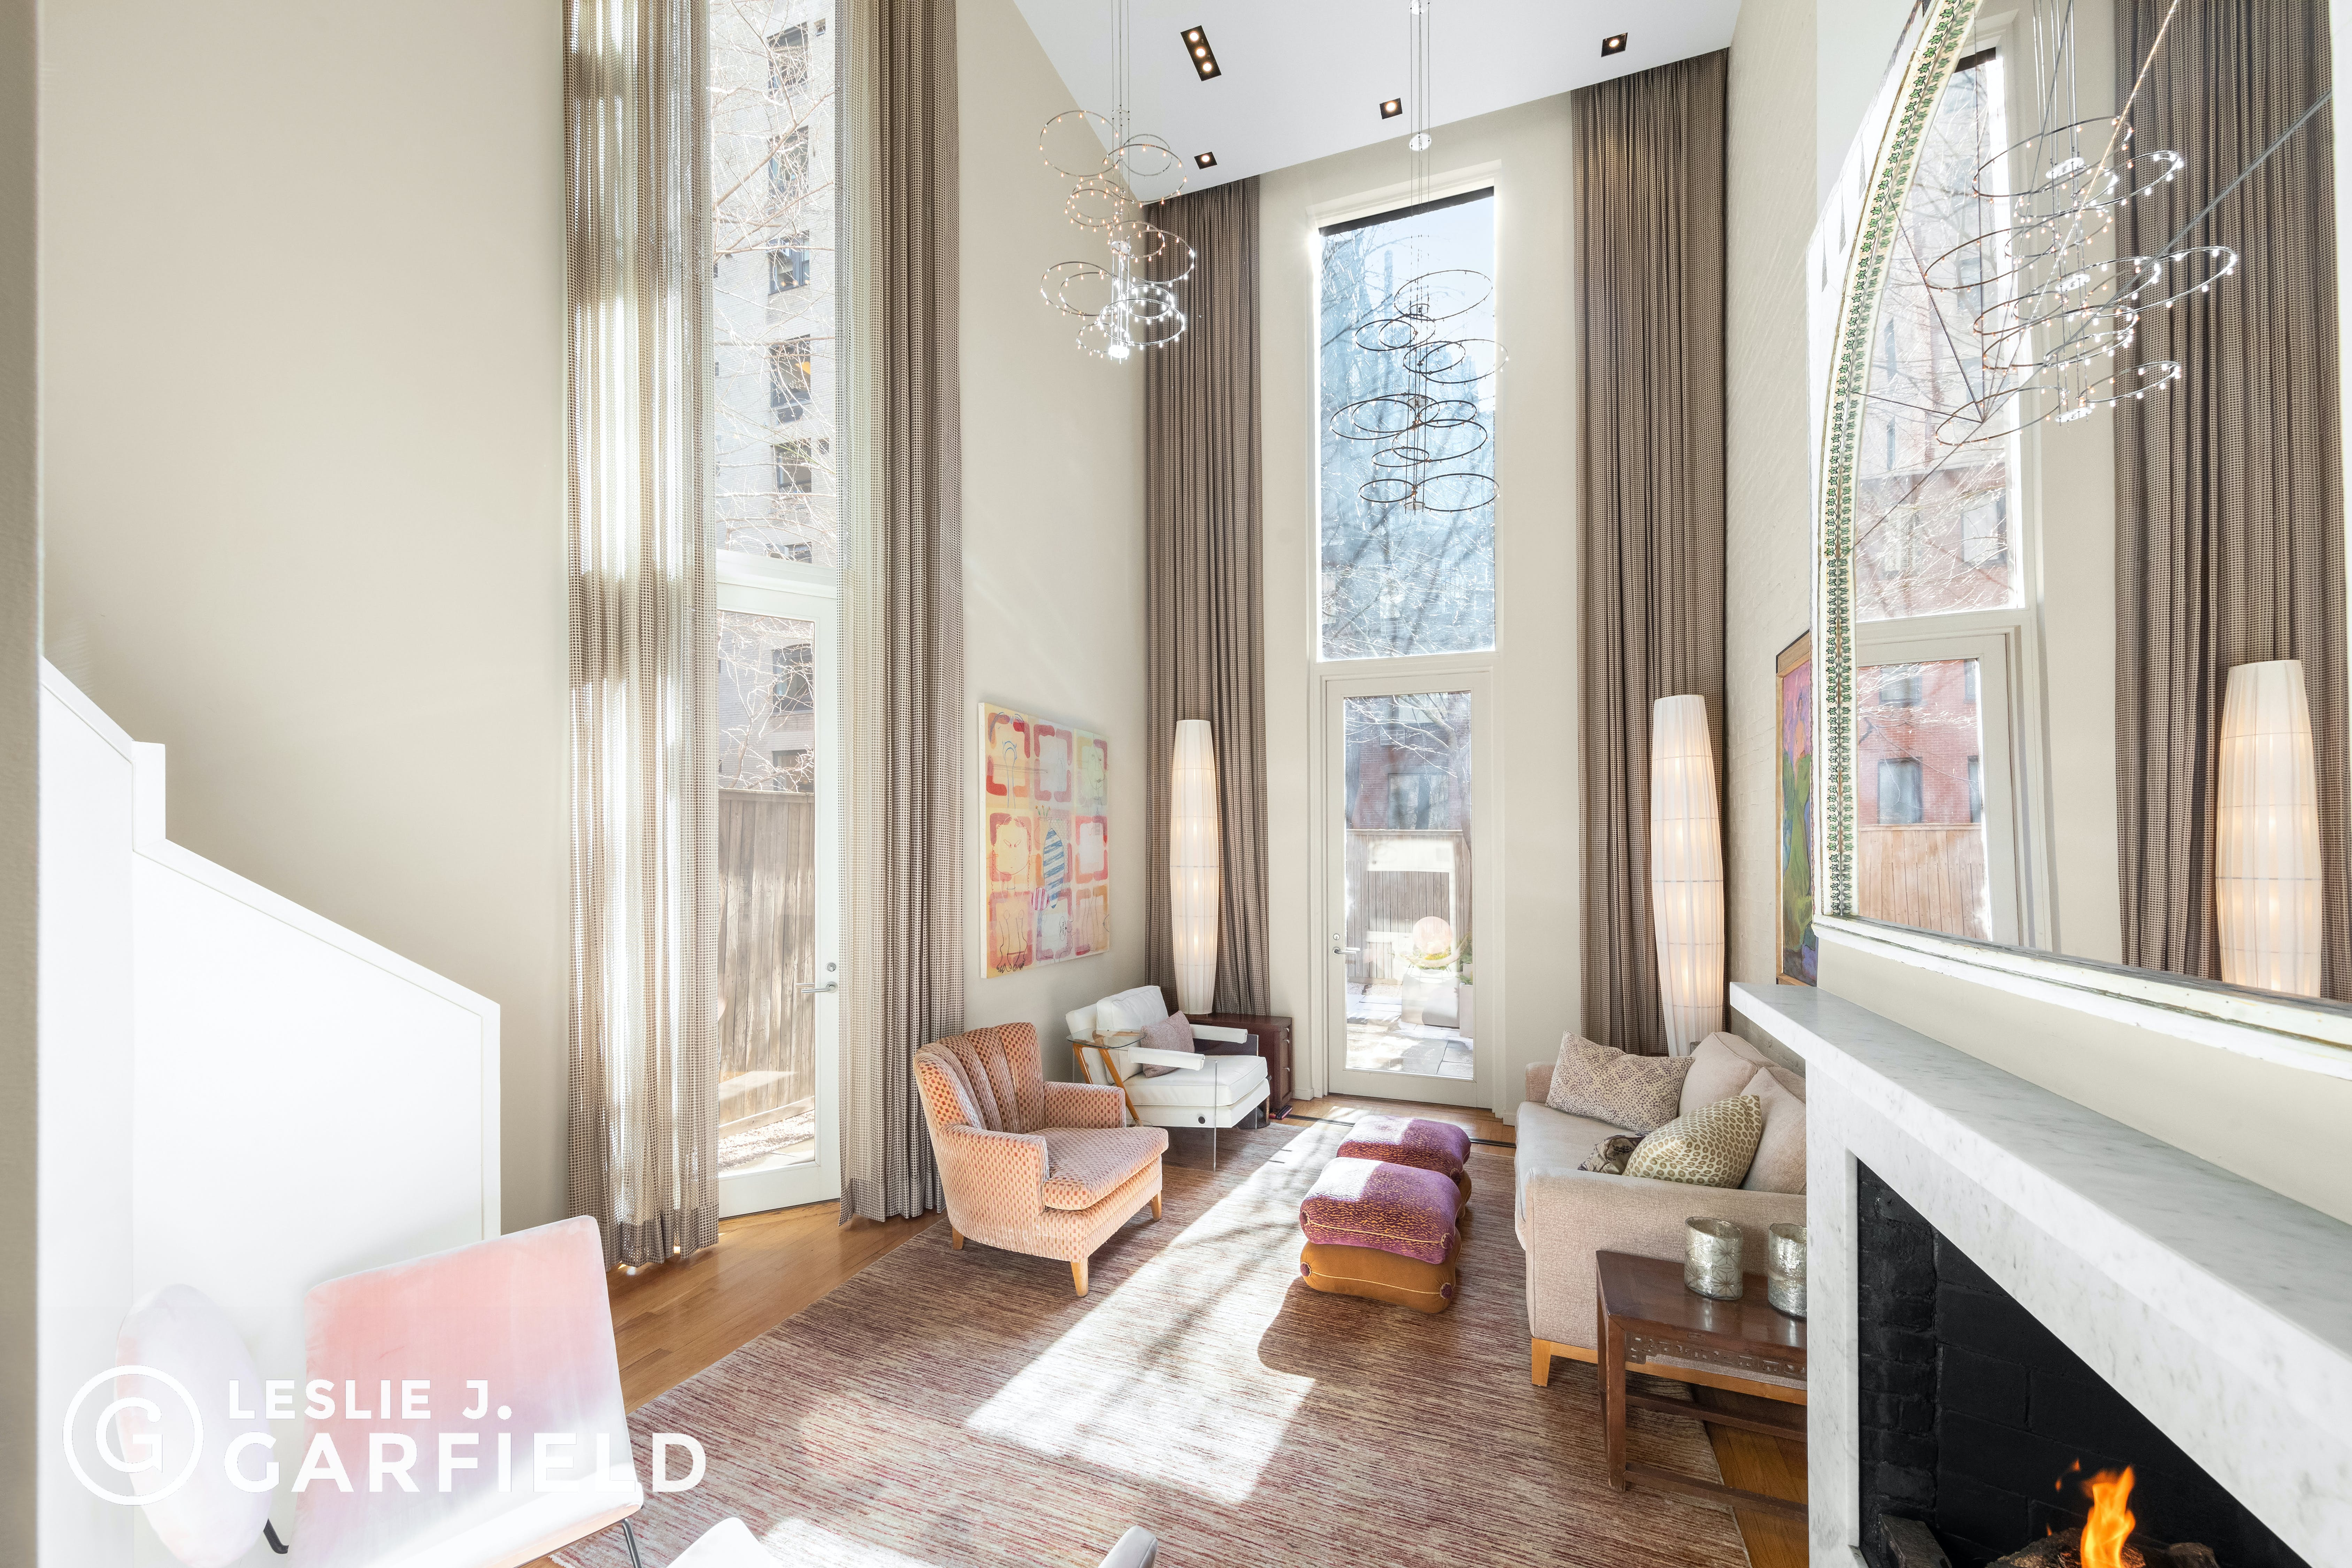 68 East 91st Street - b038d574-d8ae-427c-9e0c-a8b0f7924bfd - New York City Townhouse Real Estate